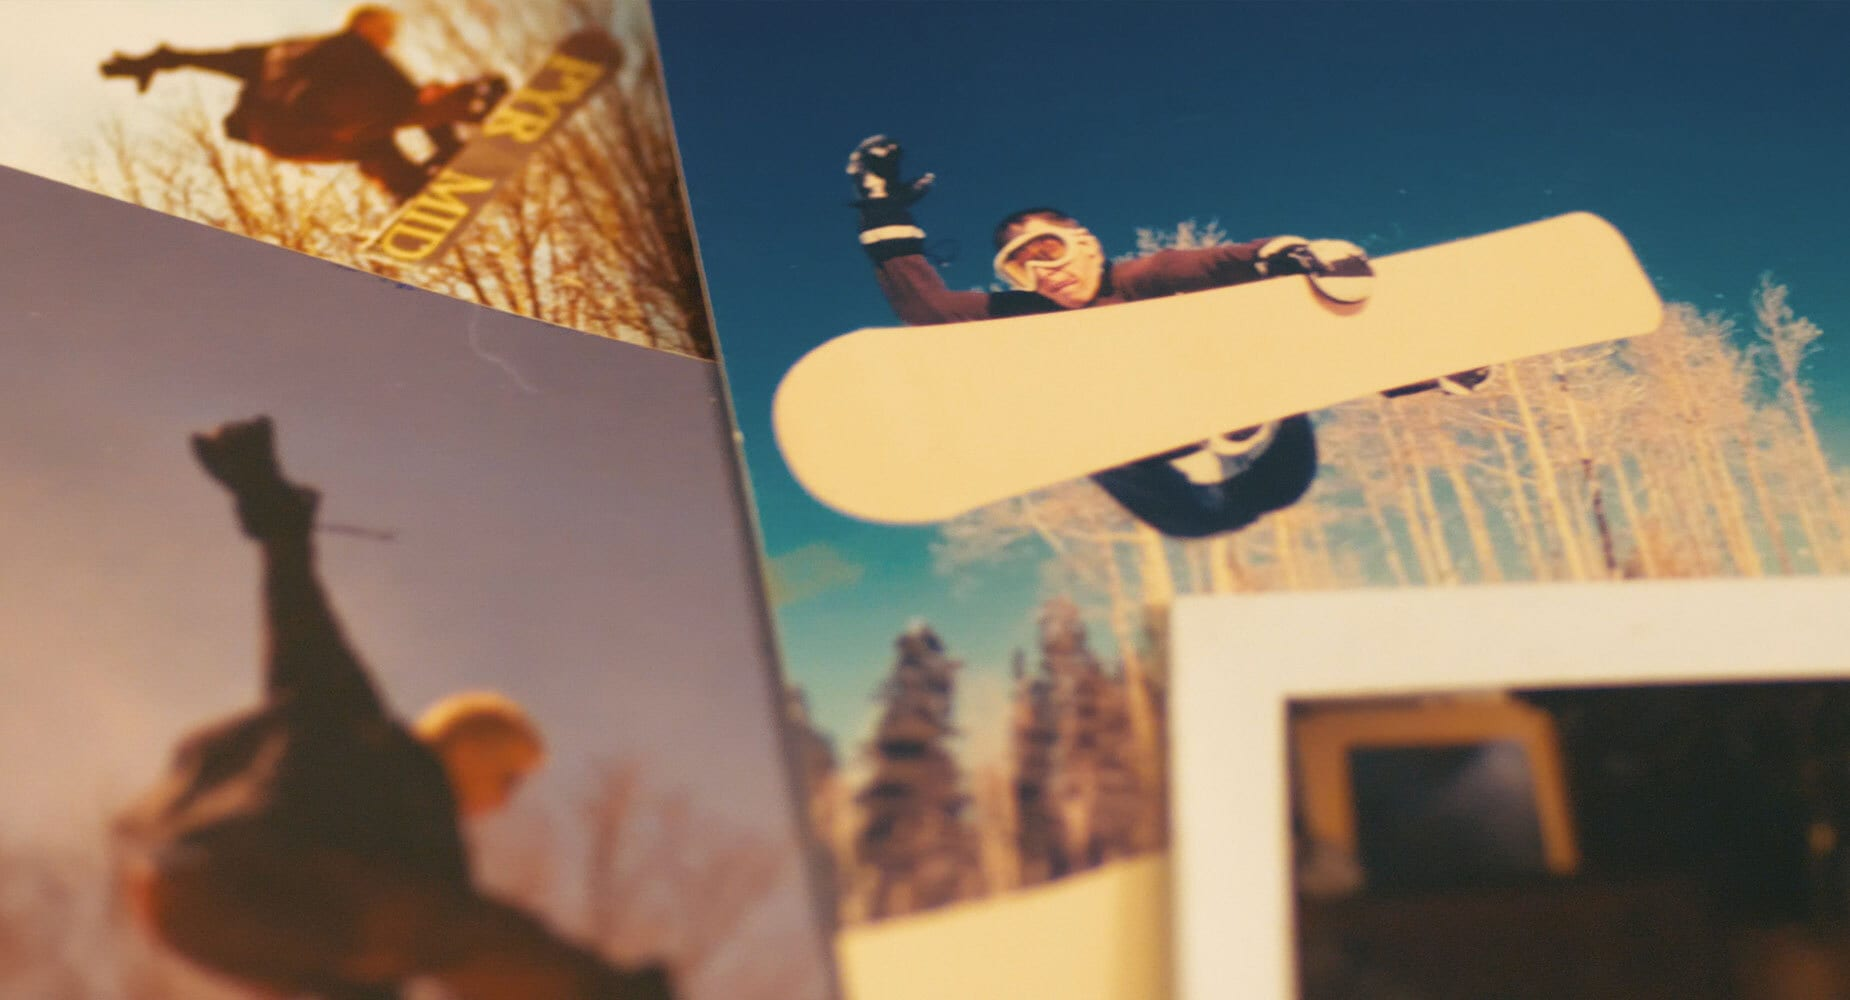 Defy snowboarding photography.